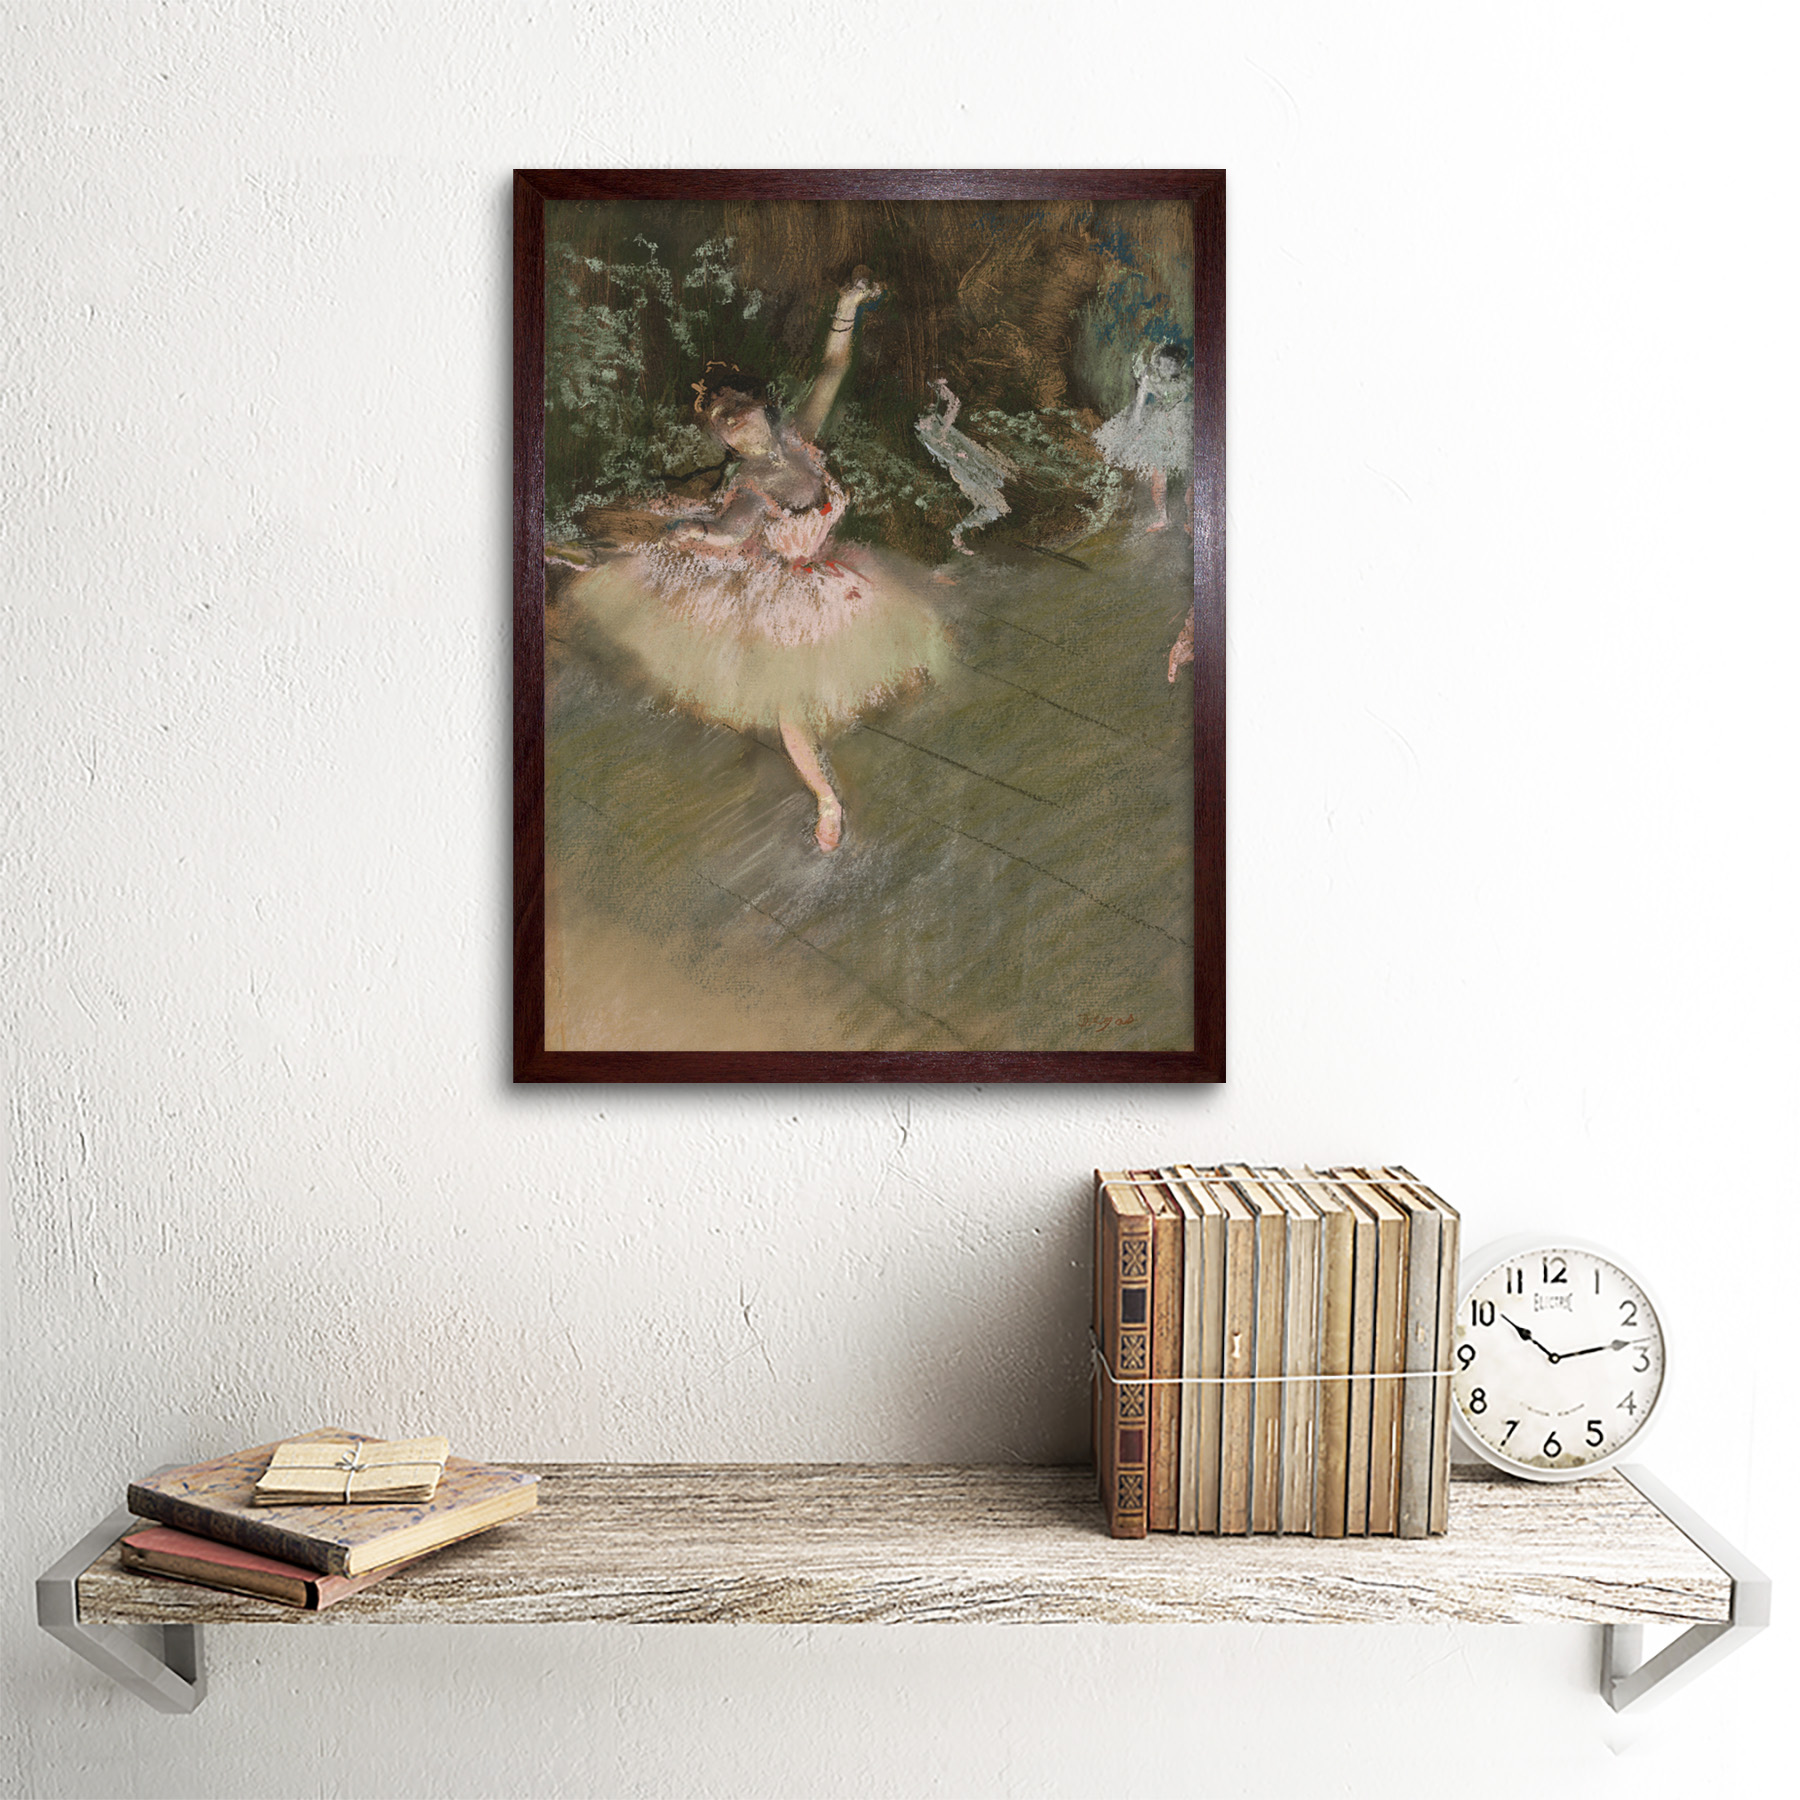 Edgar-Degas-The-Star-Art-Print-Framed-12x16 thumbnail 8